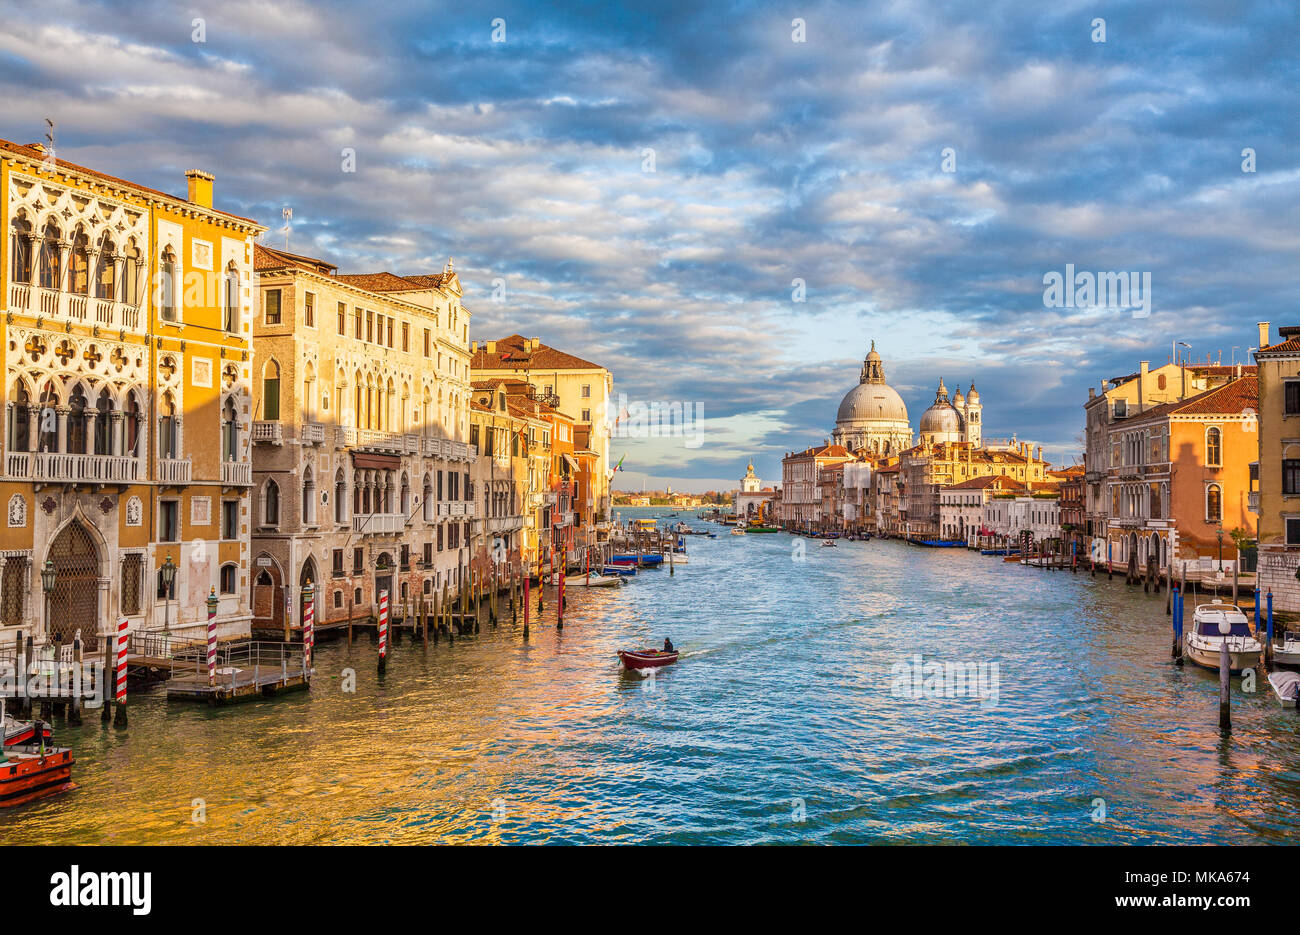 Classic panoramic view of famous Canal Grande with scenic Basilica di Santa Maria della Salute in beautiful golden evening light at sunset, Venice, It - Stock Image